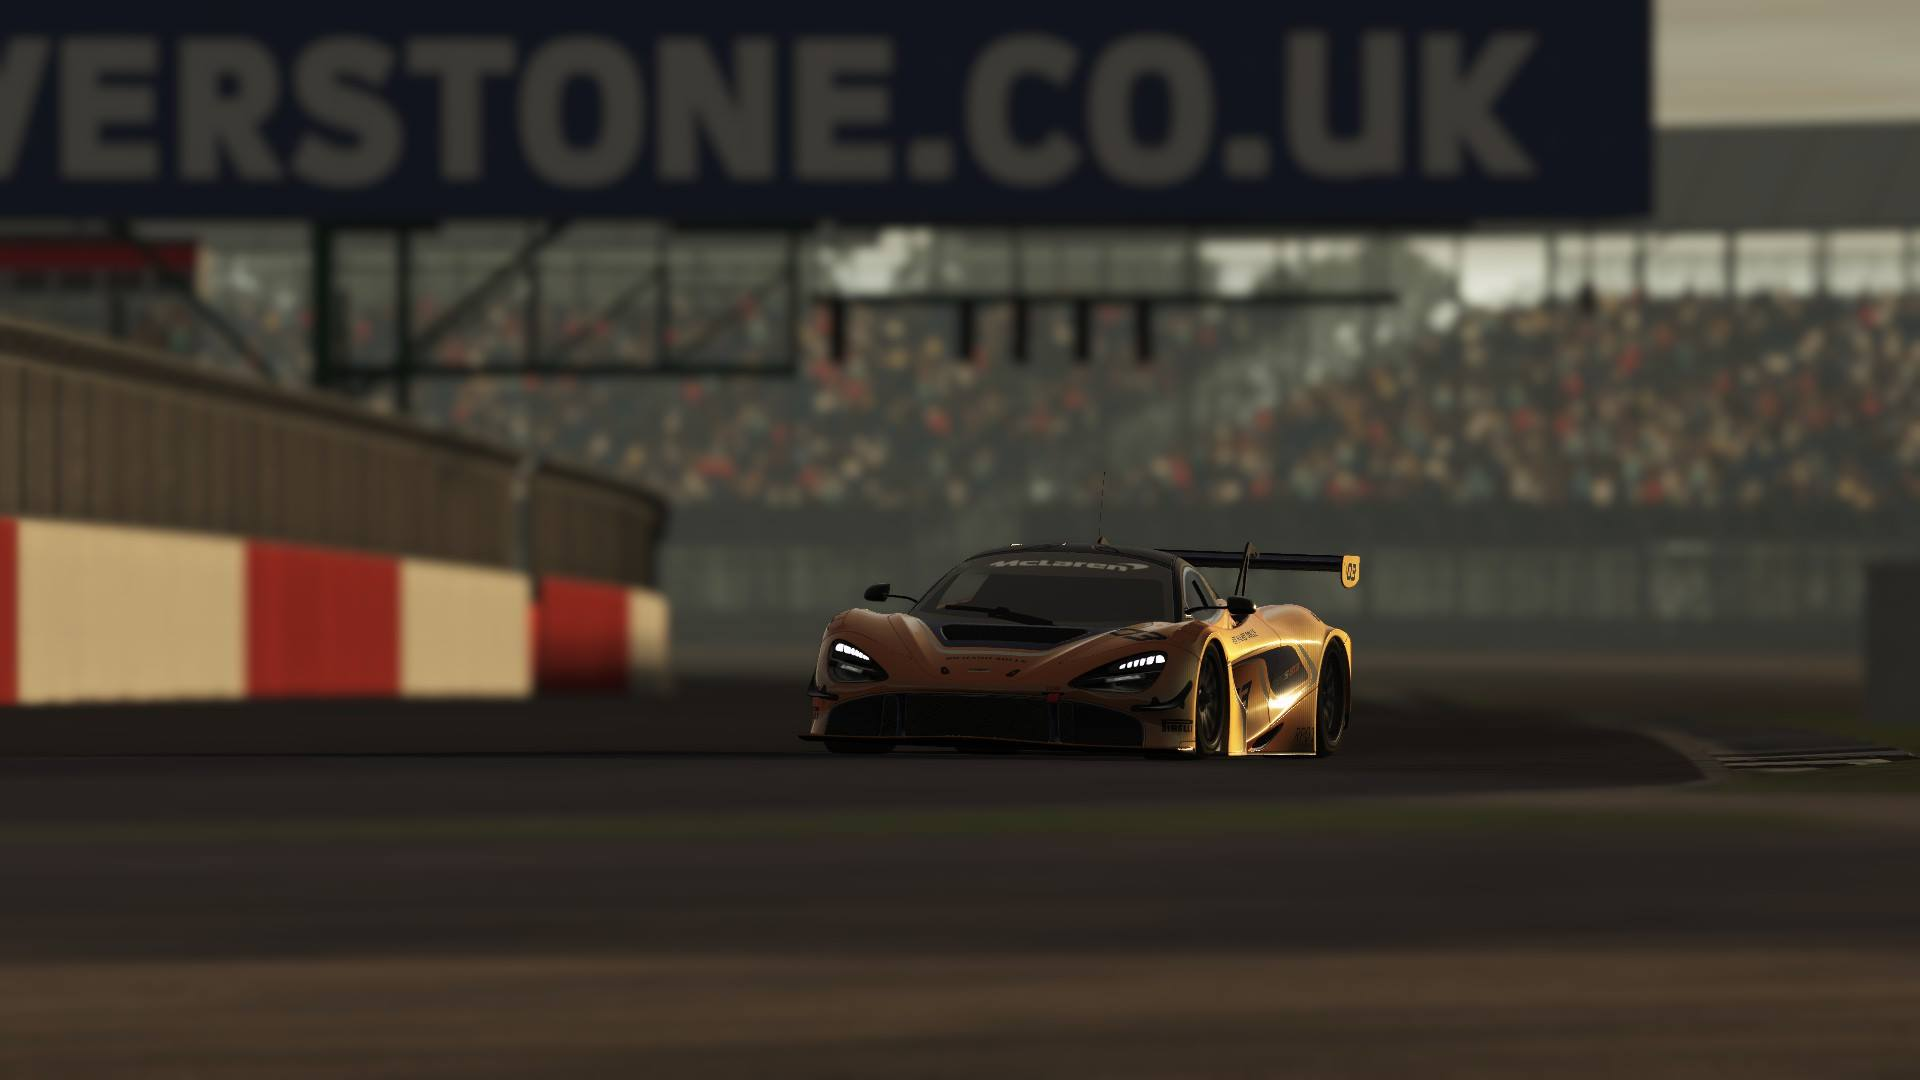 GT3 Challengers Pack for rFactor 2 Announced – VirtualR net – 100